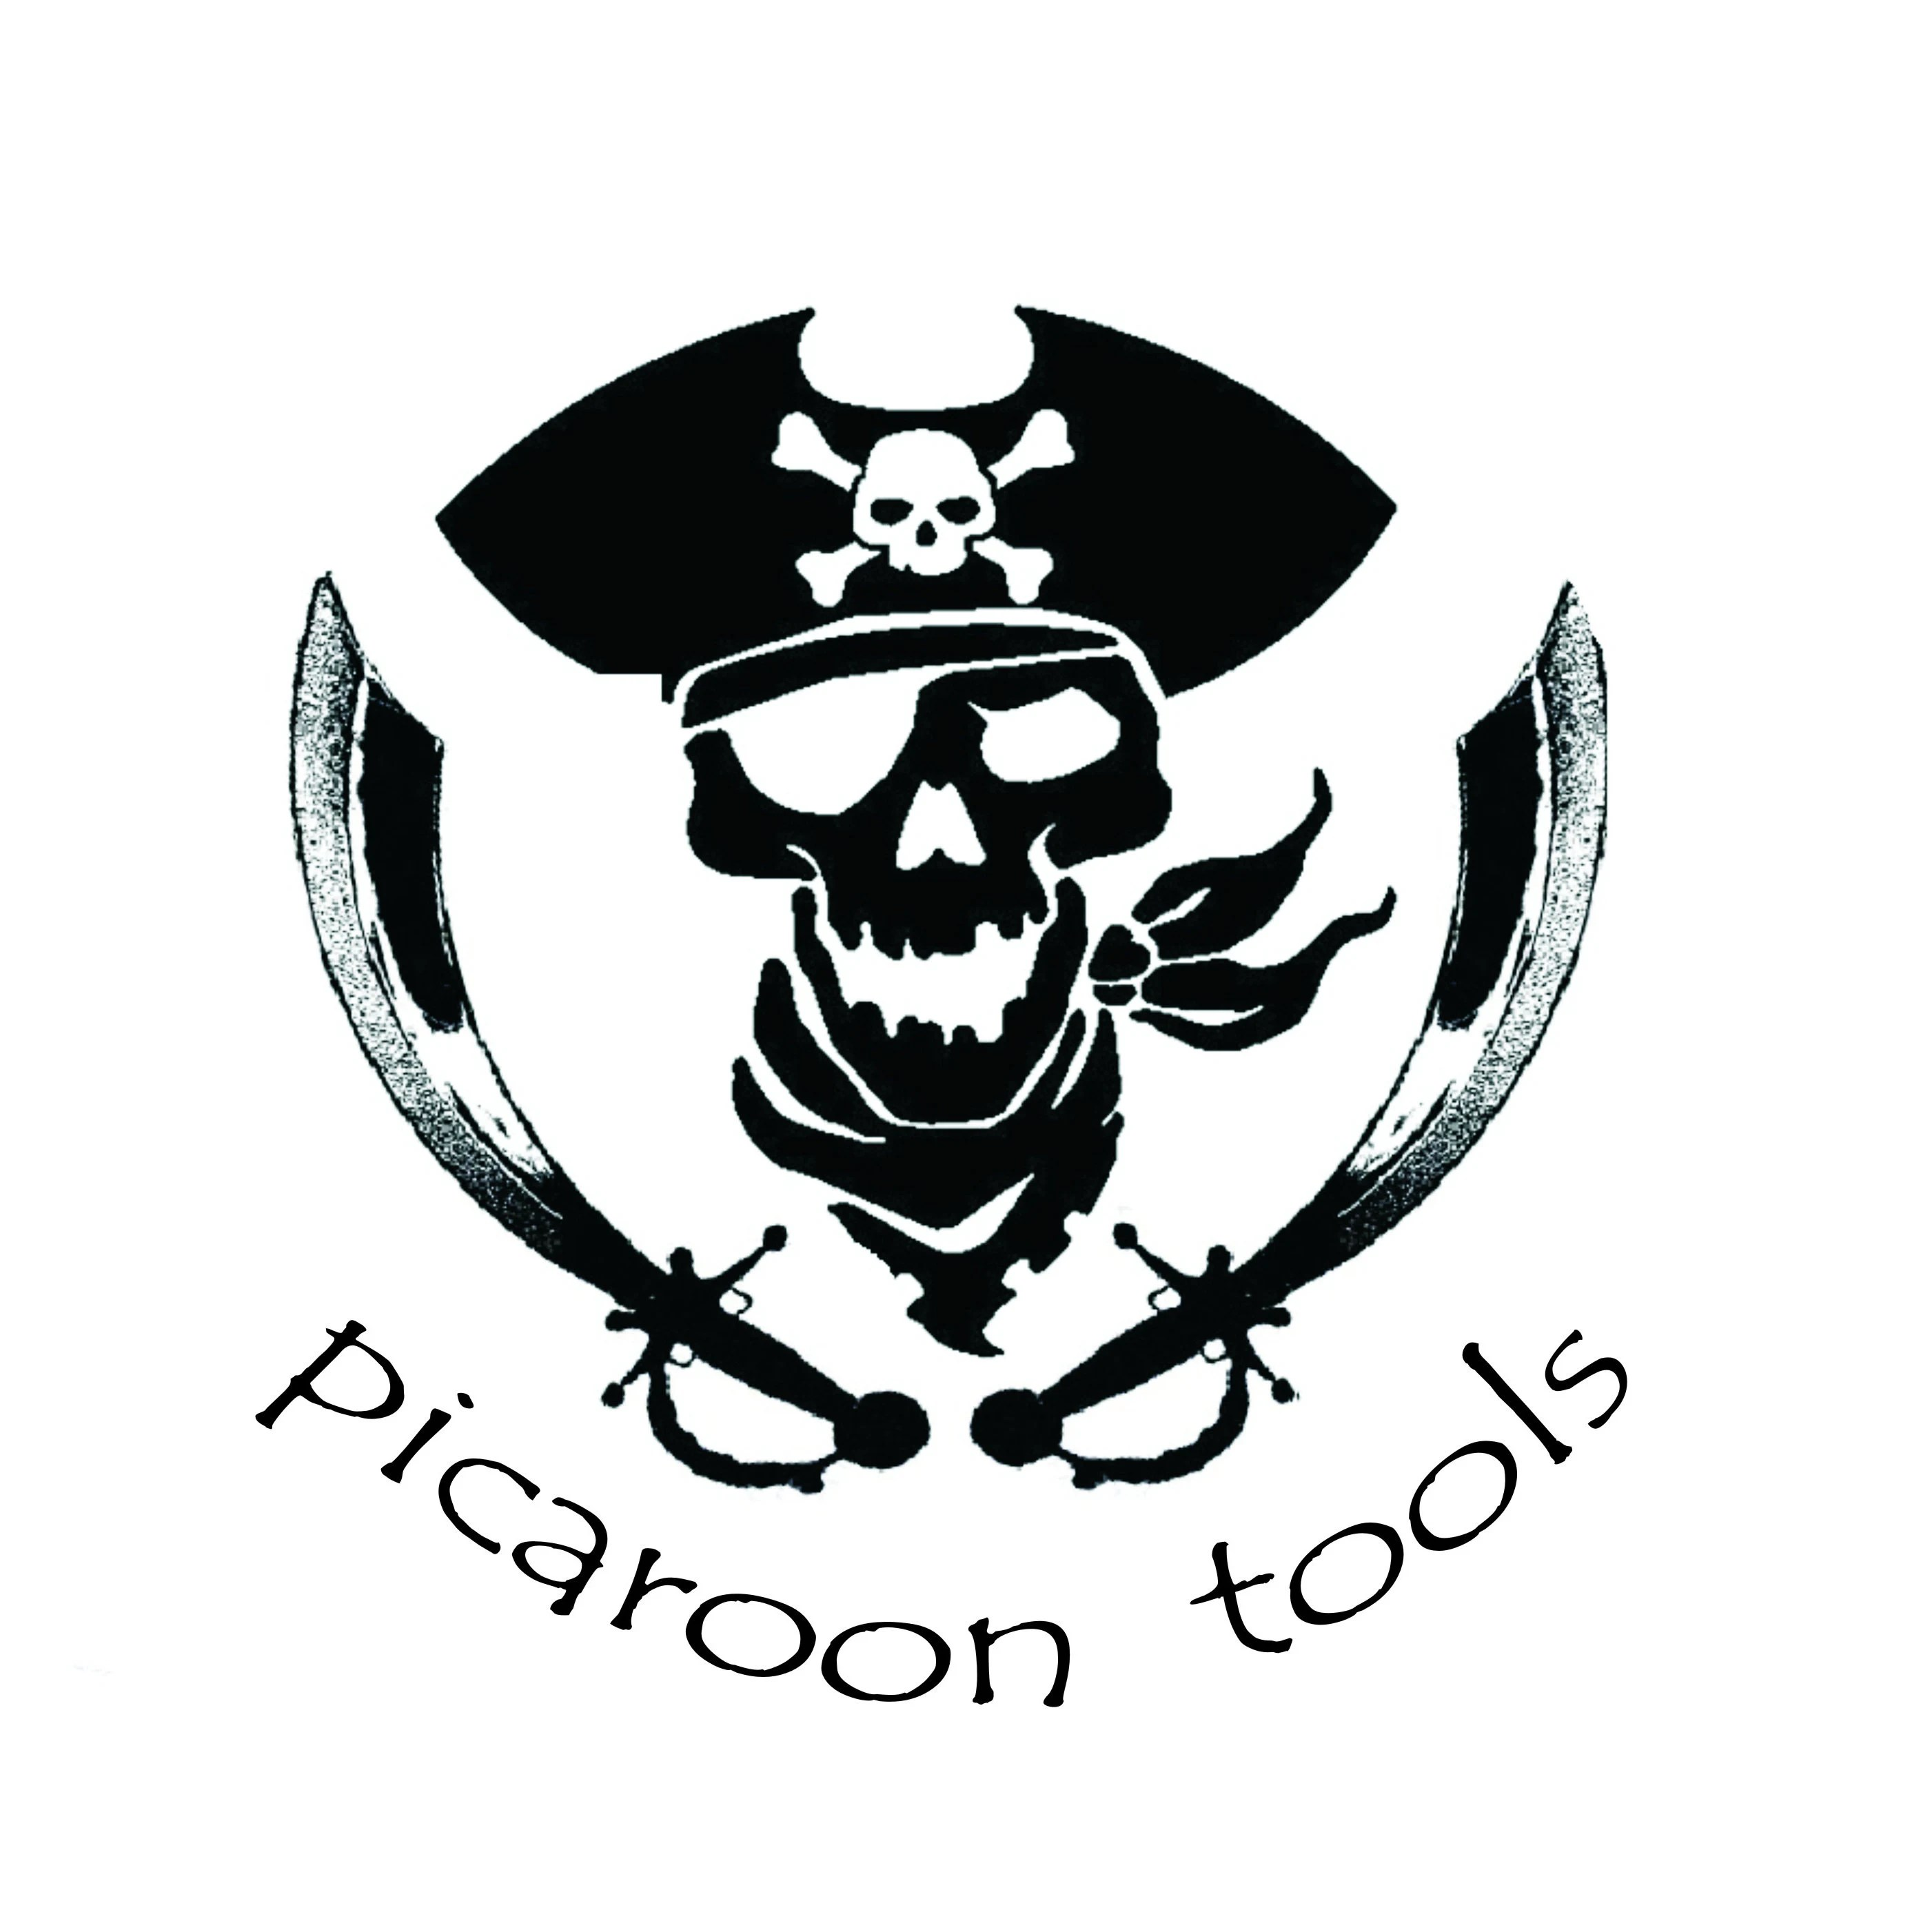 Picaroon Tools pocket tools and knucks for by PicaroonTools